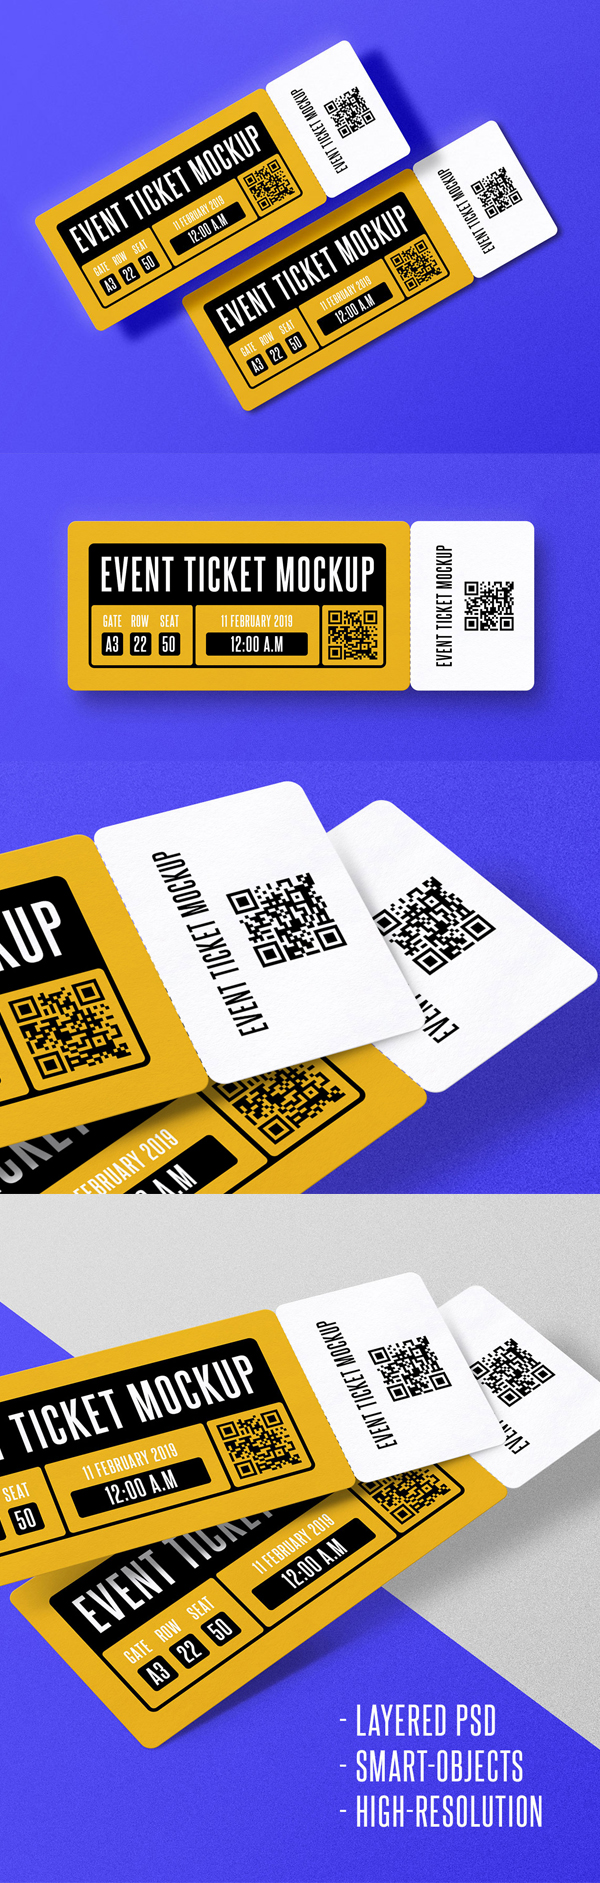 Free event ticket mockup